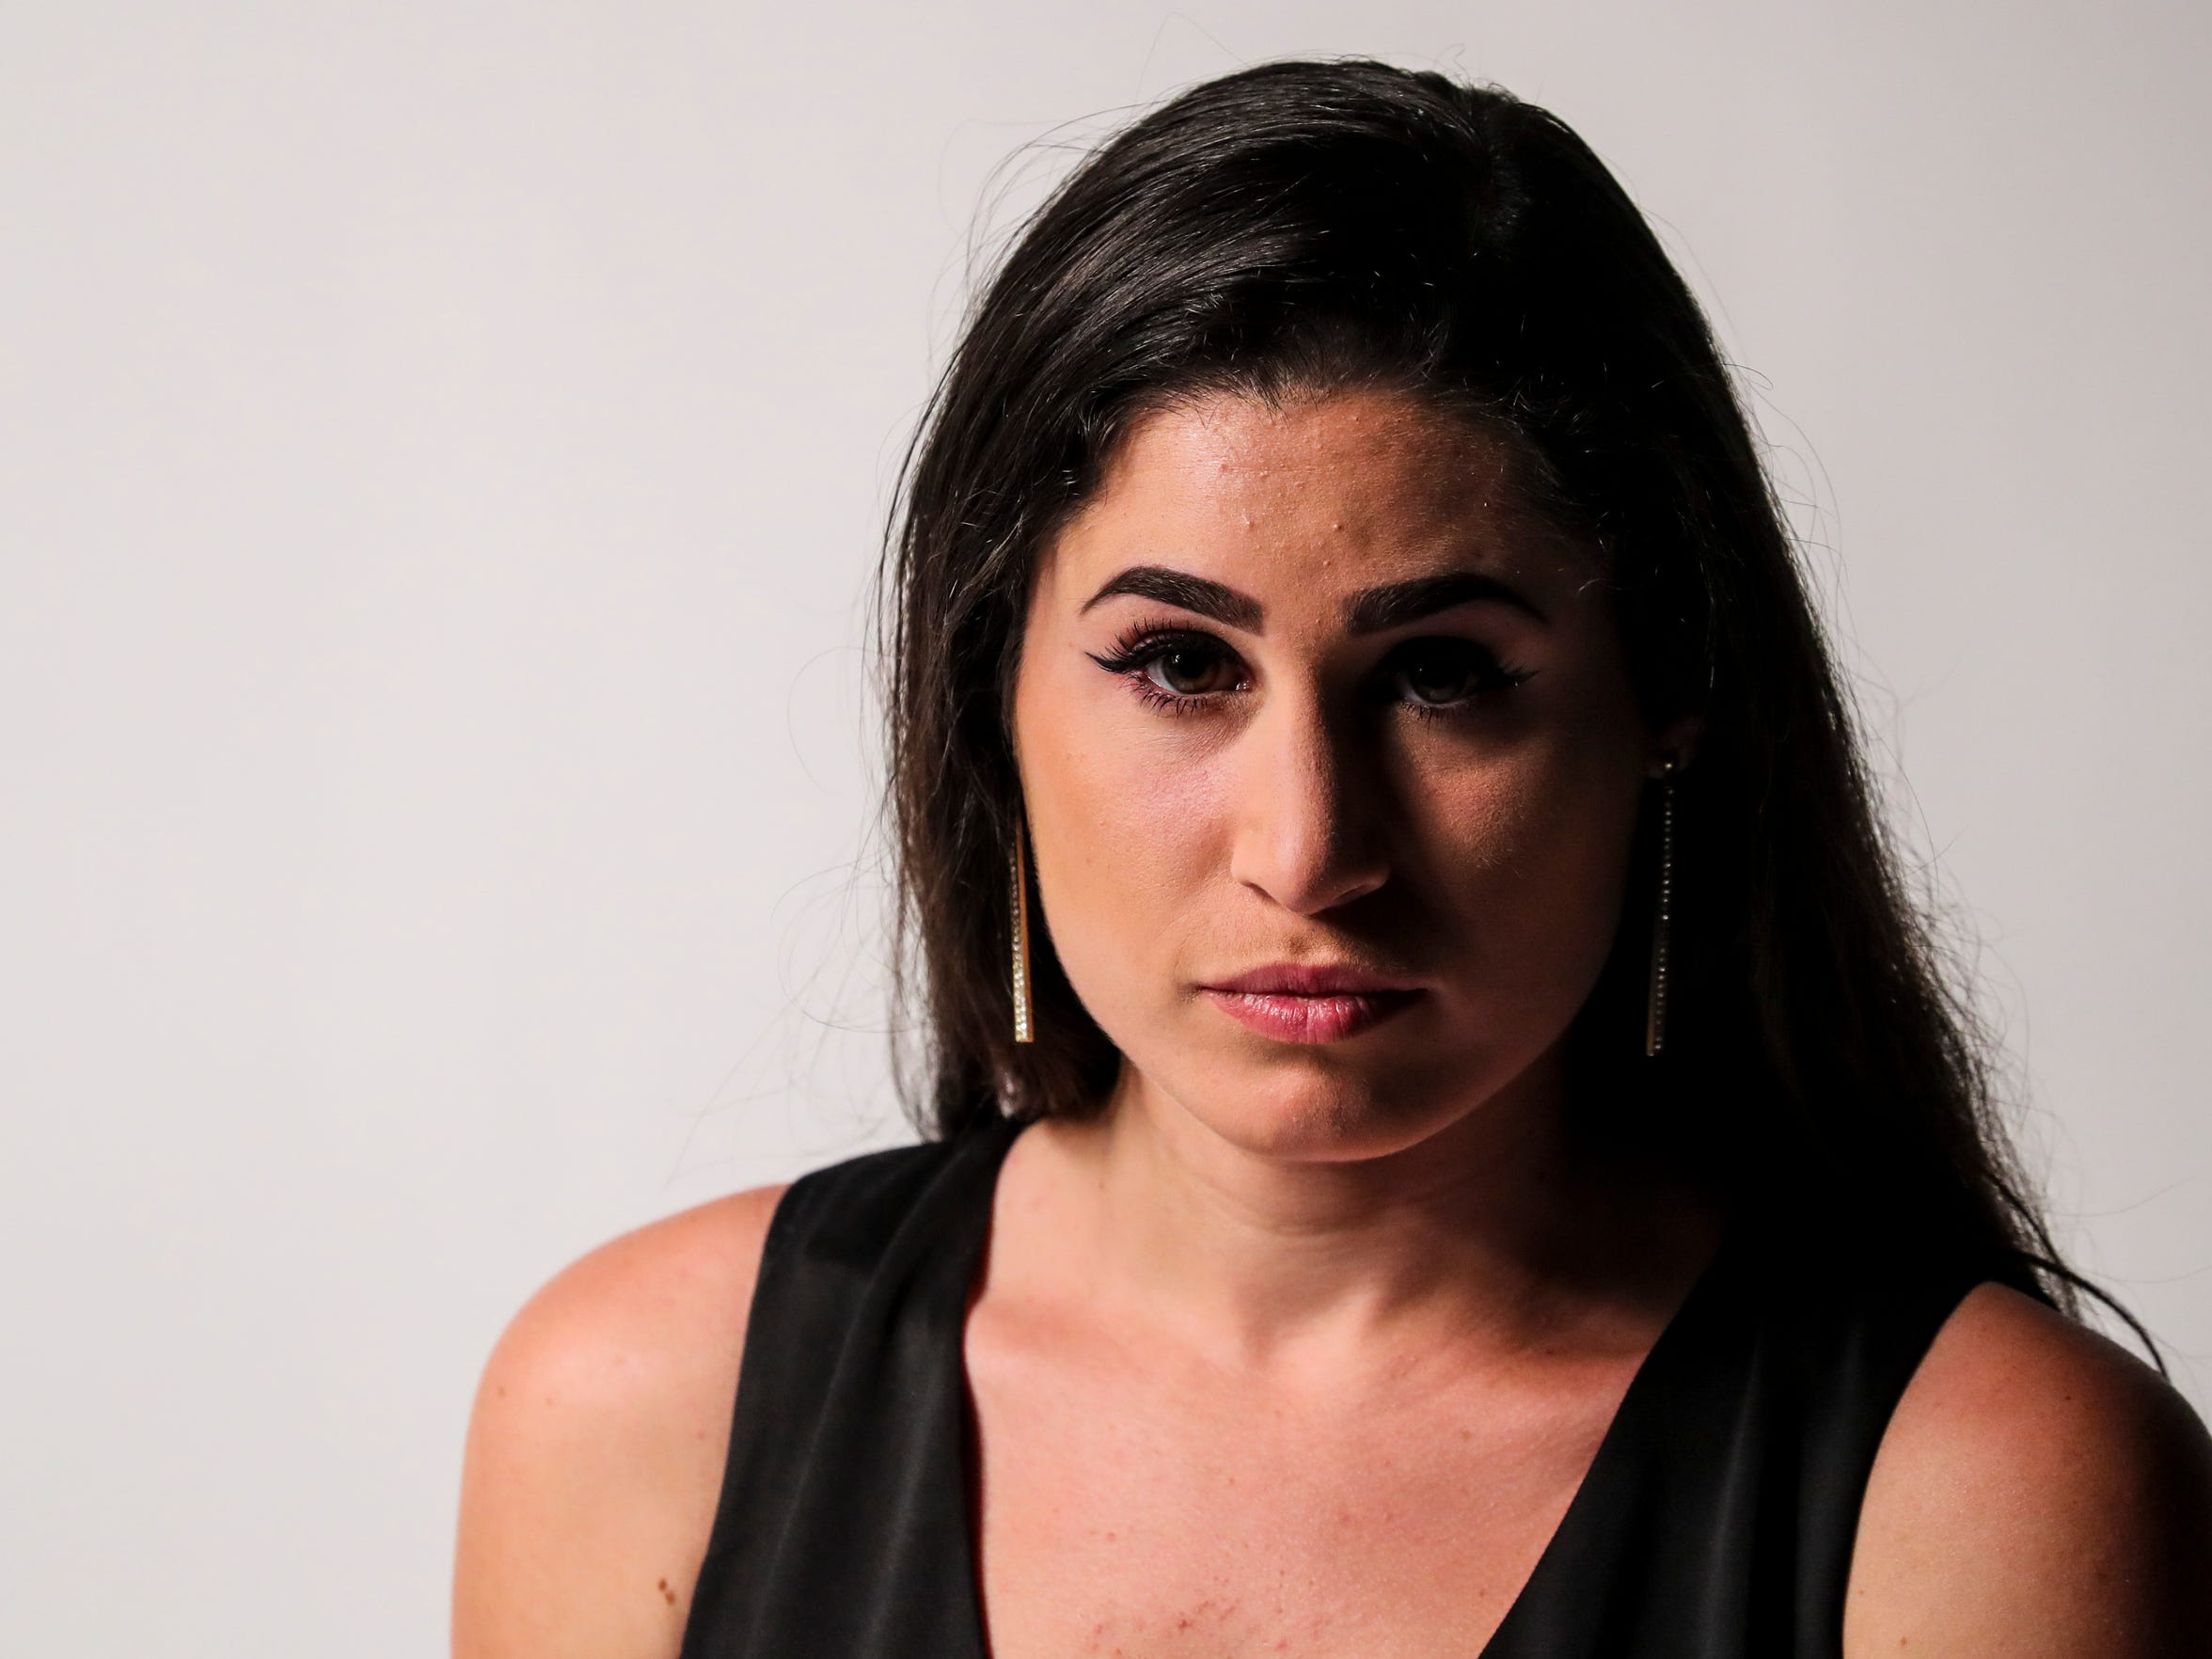 Megan Shindler started a performance group where they tell the stories of sexual assault using words and performance art from stories she has collected since she herself was a victim of sexual assault at the age of 15.